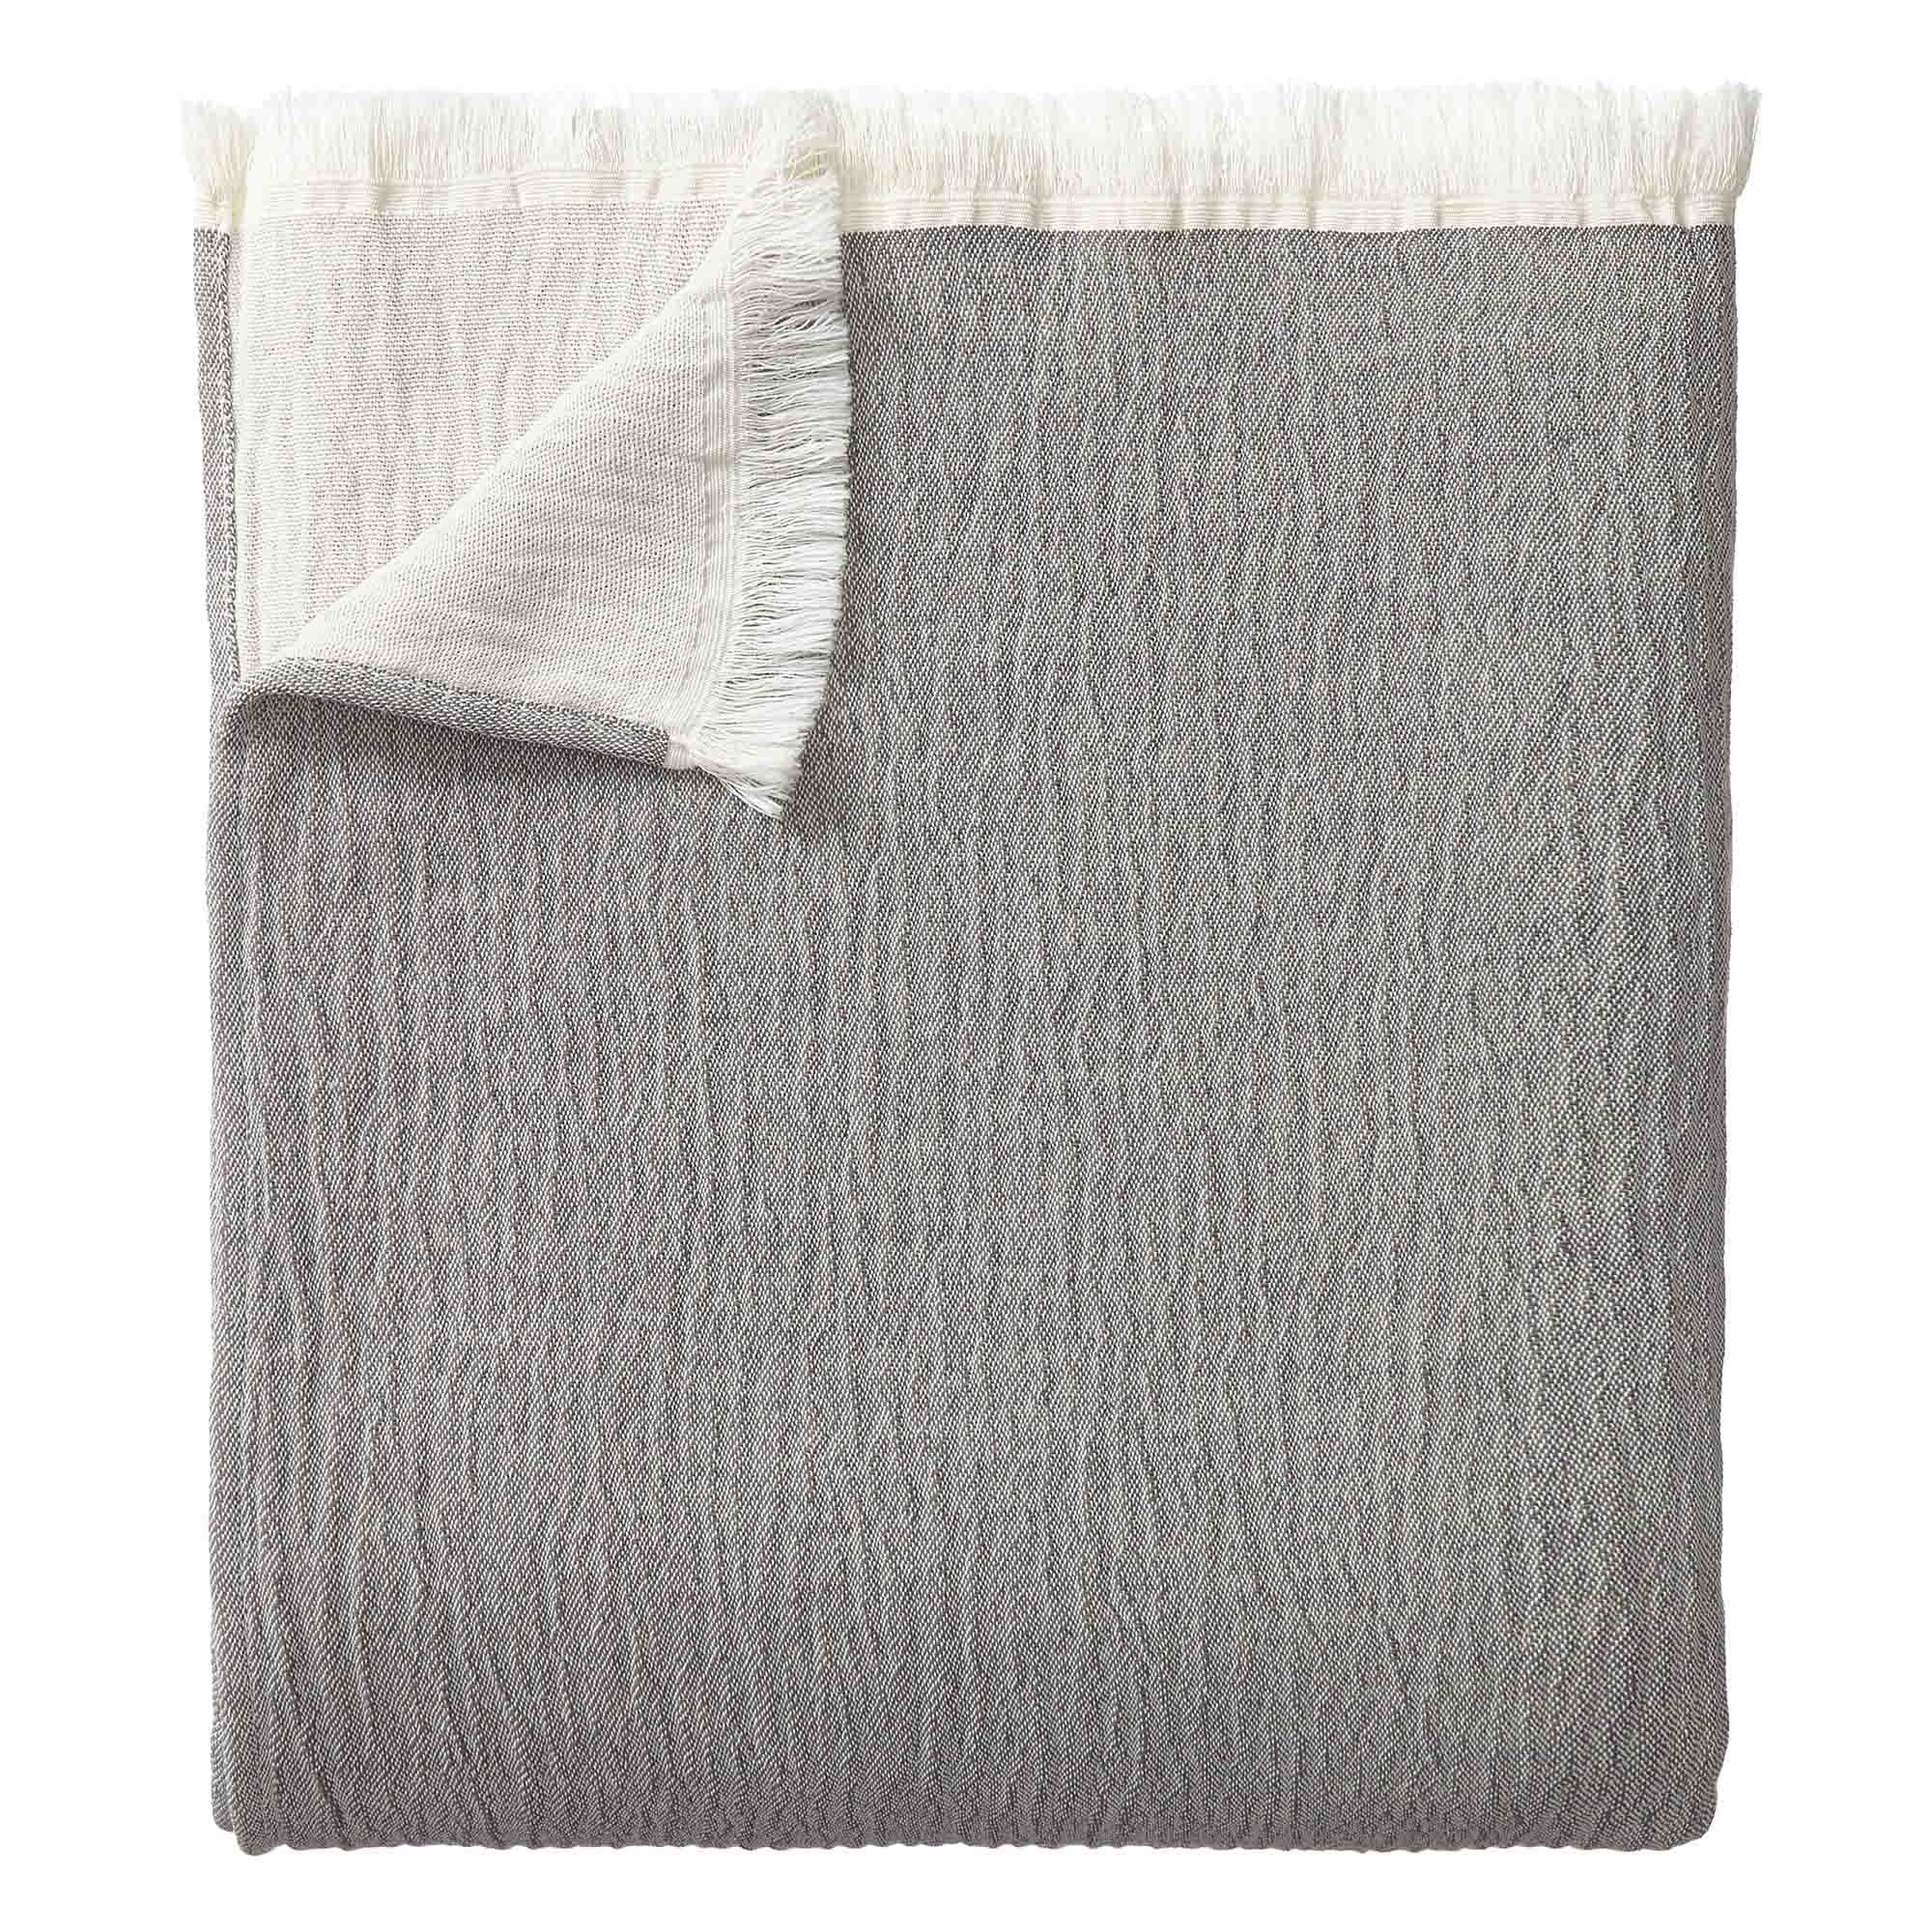 Anaba Bedspread [Grey/Natural white]